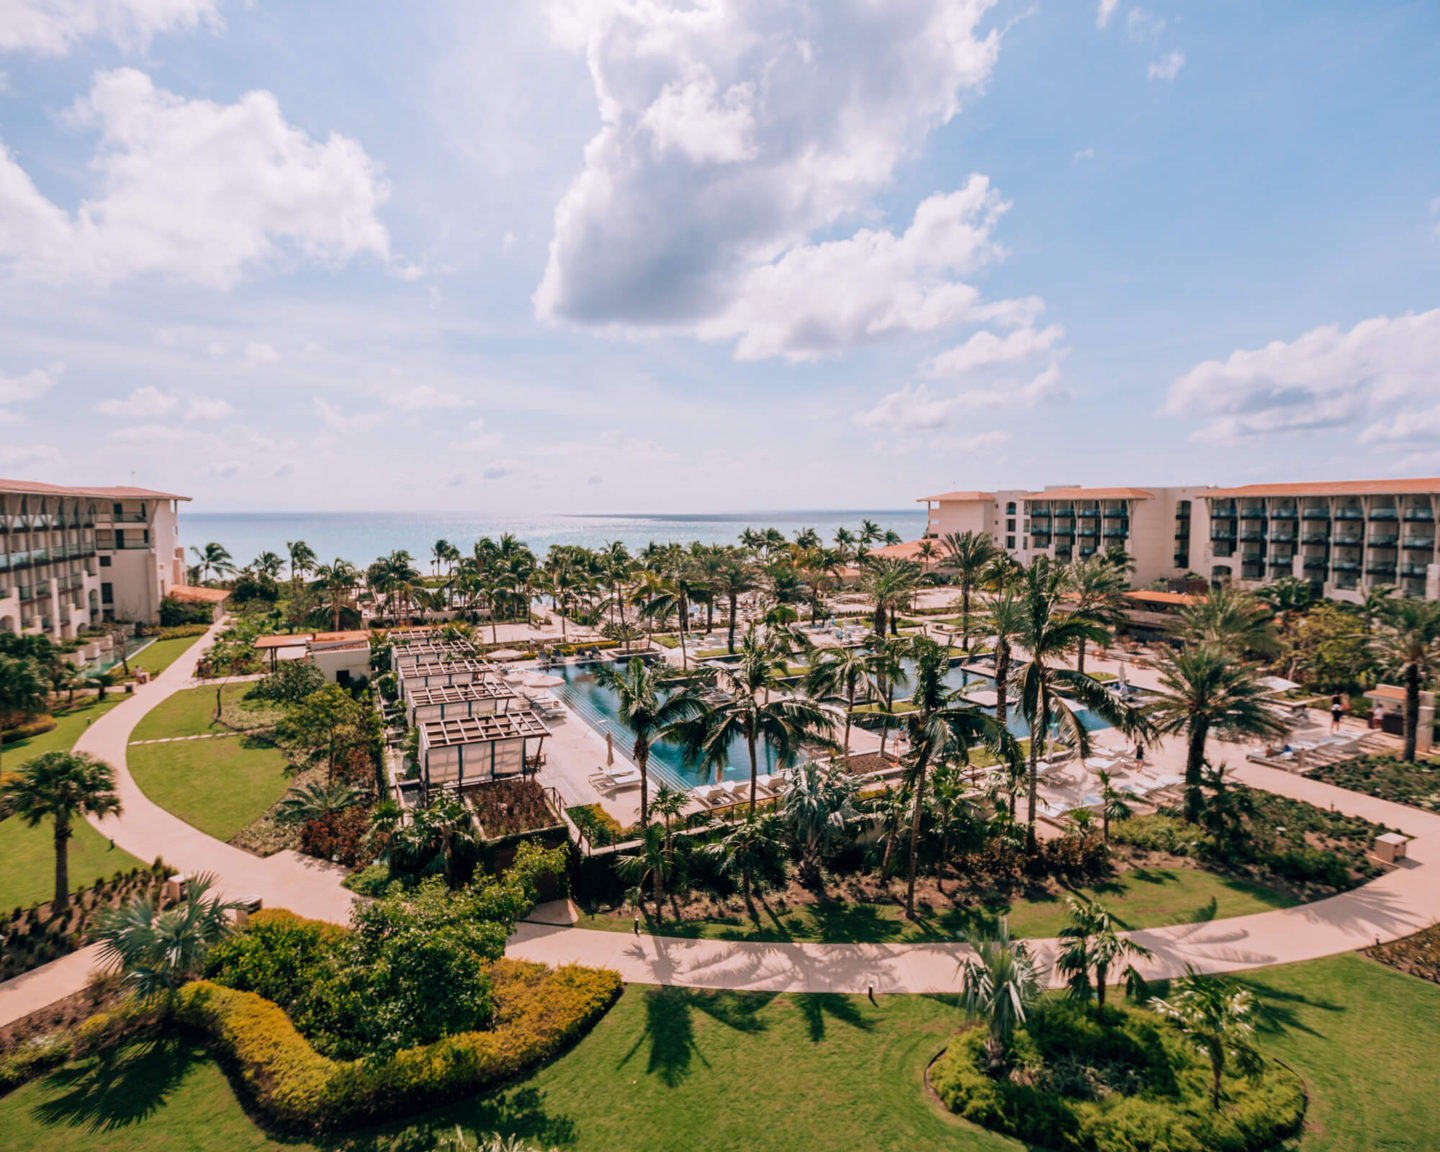 The view from the balcony at UNICO 2087 Riviera Maya